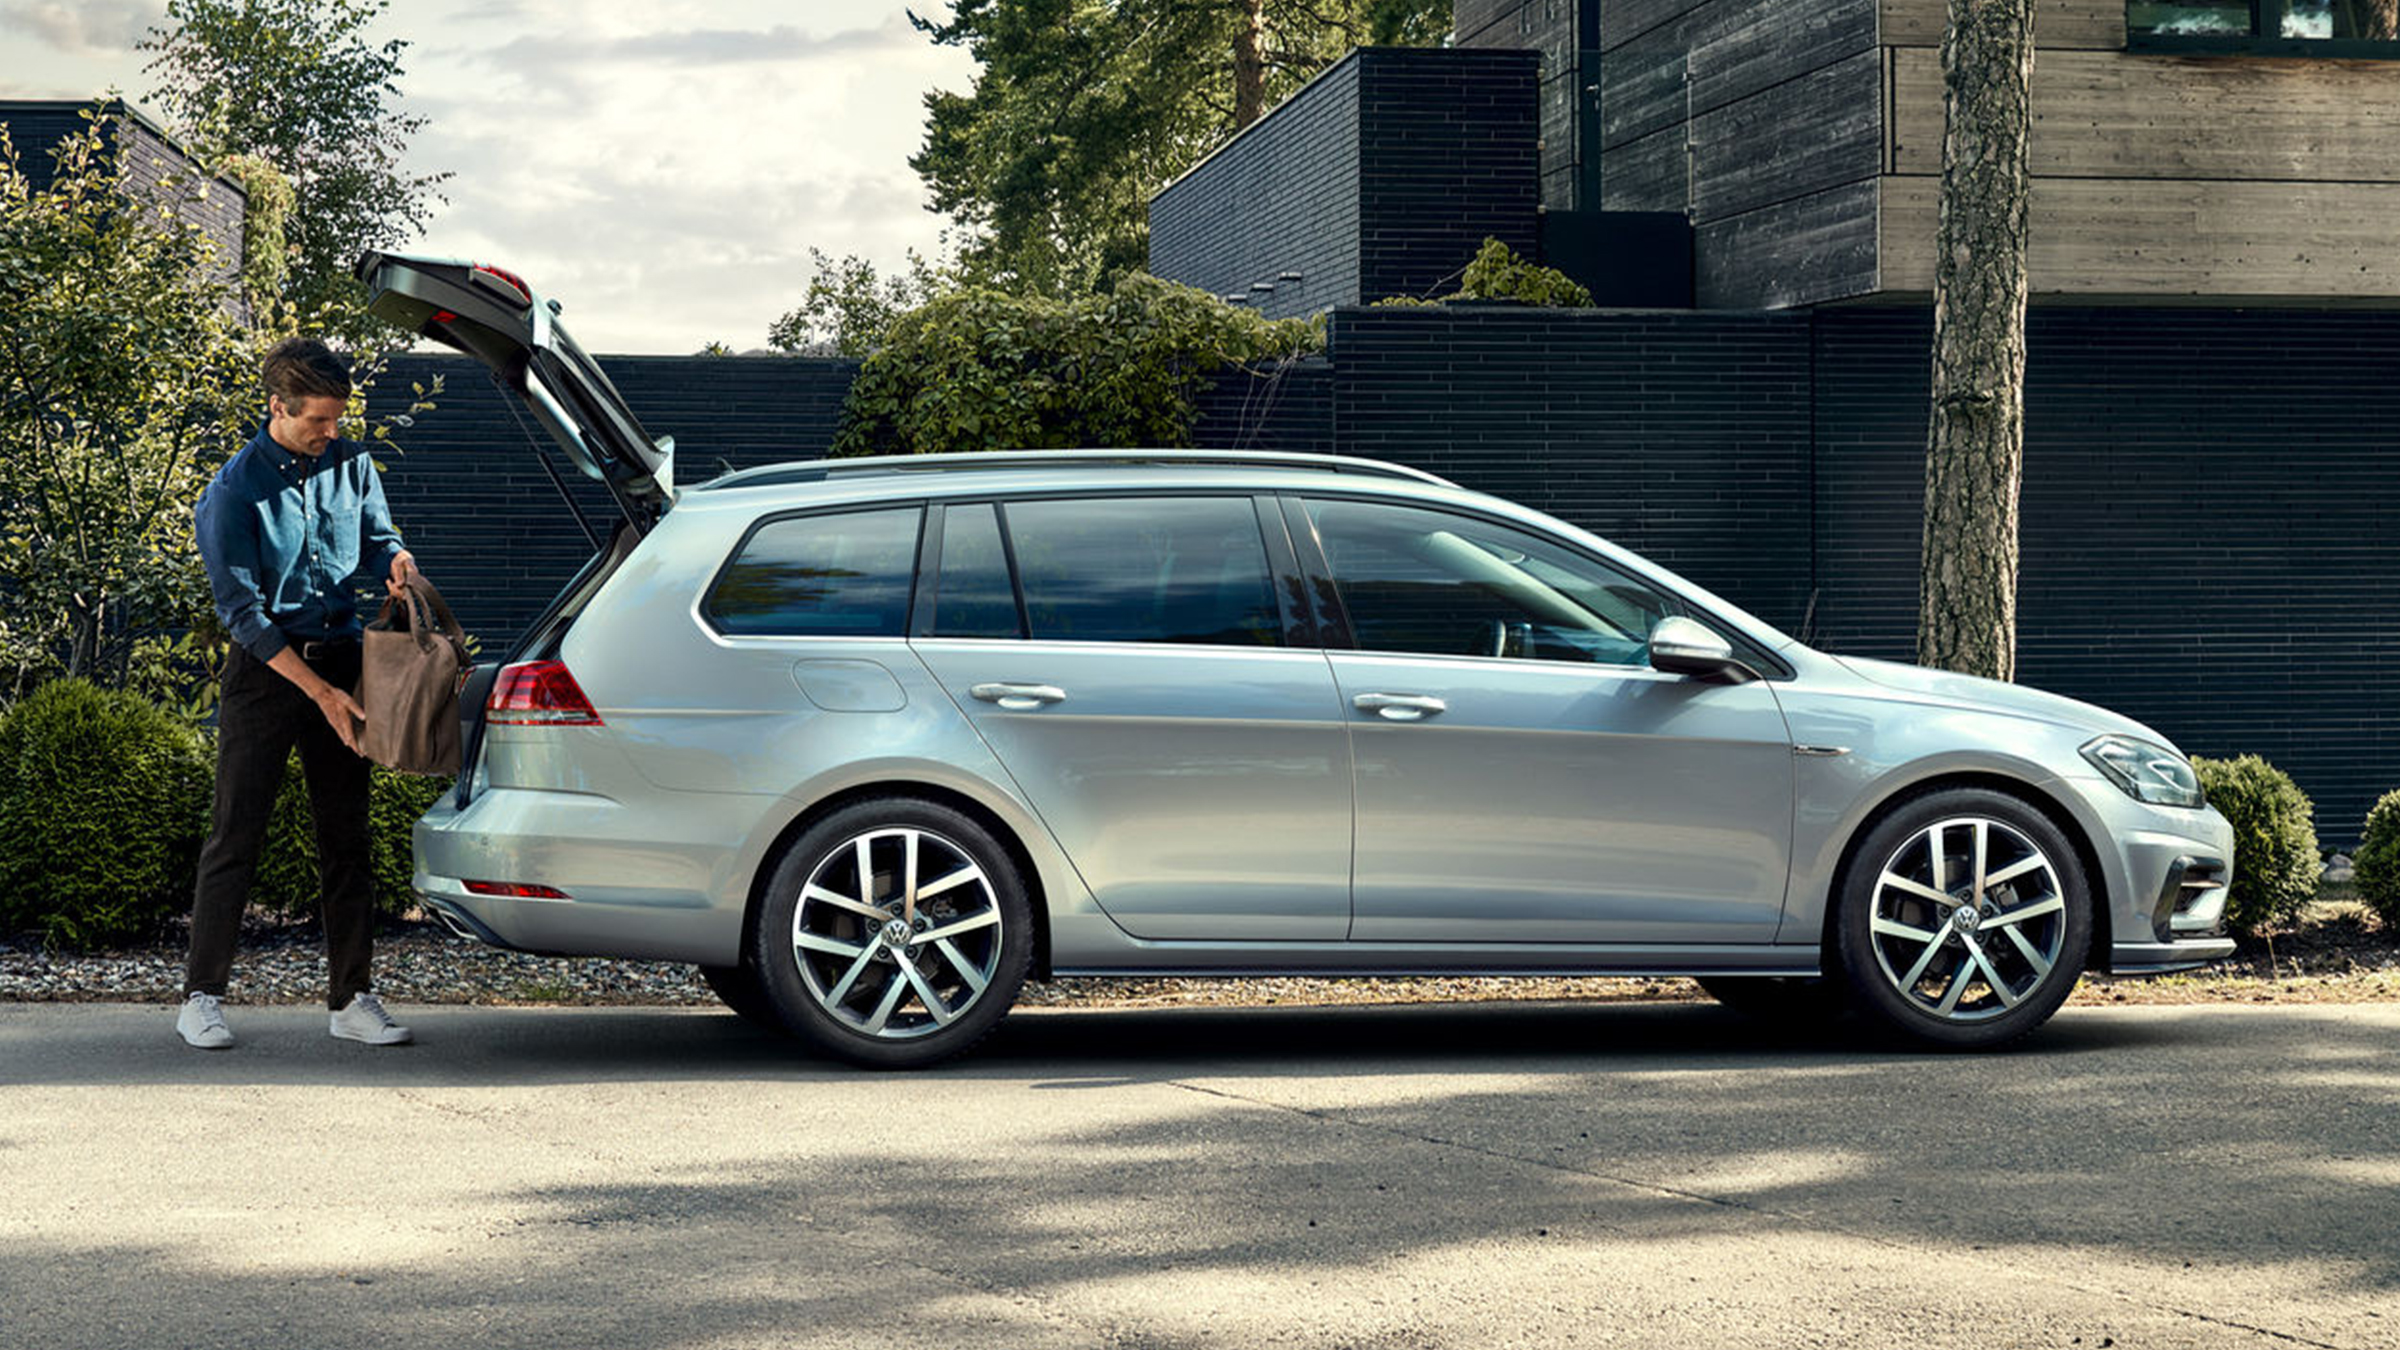 Golf Variant Private Lease Volkswagen Nl